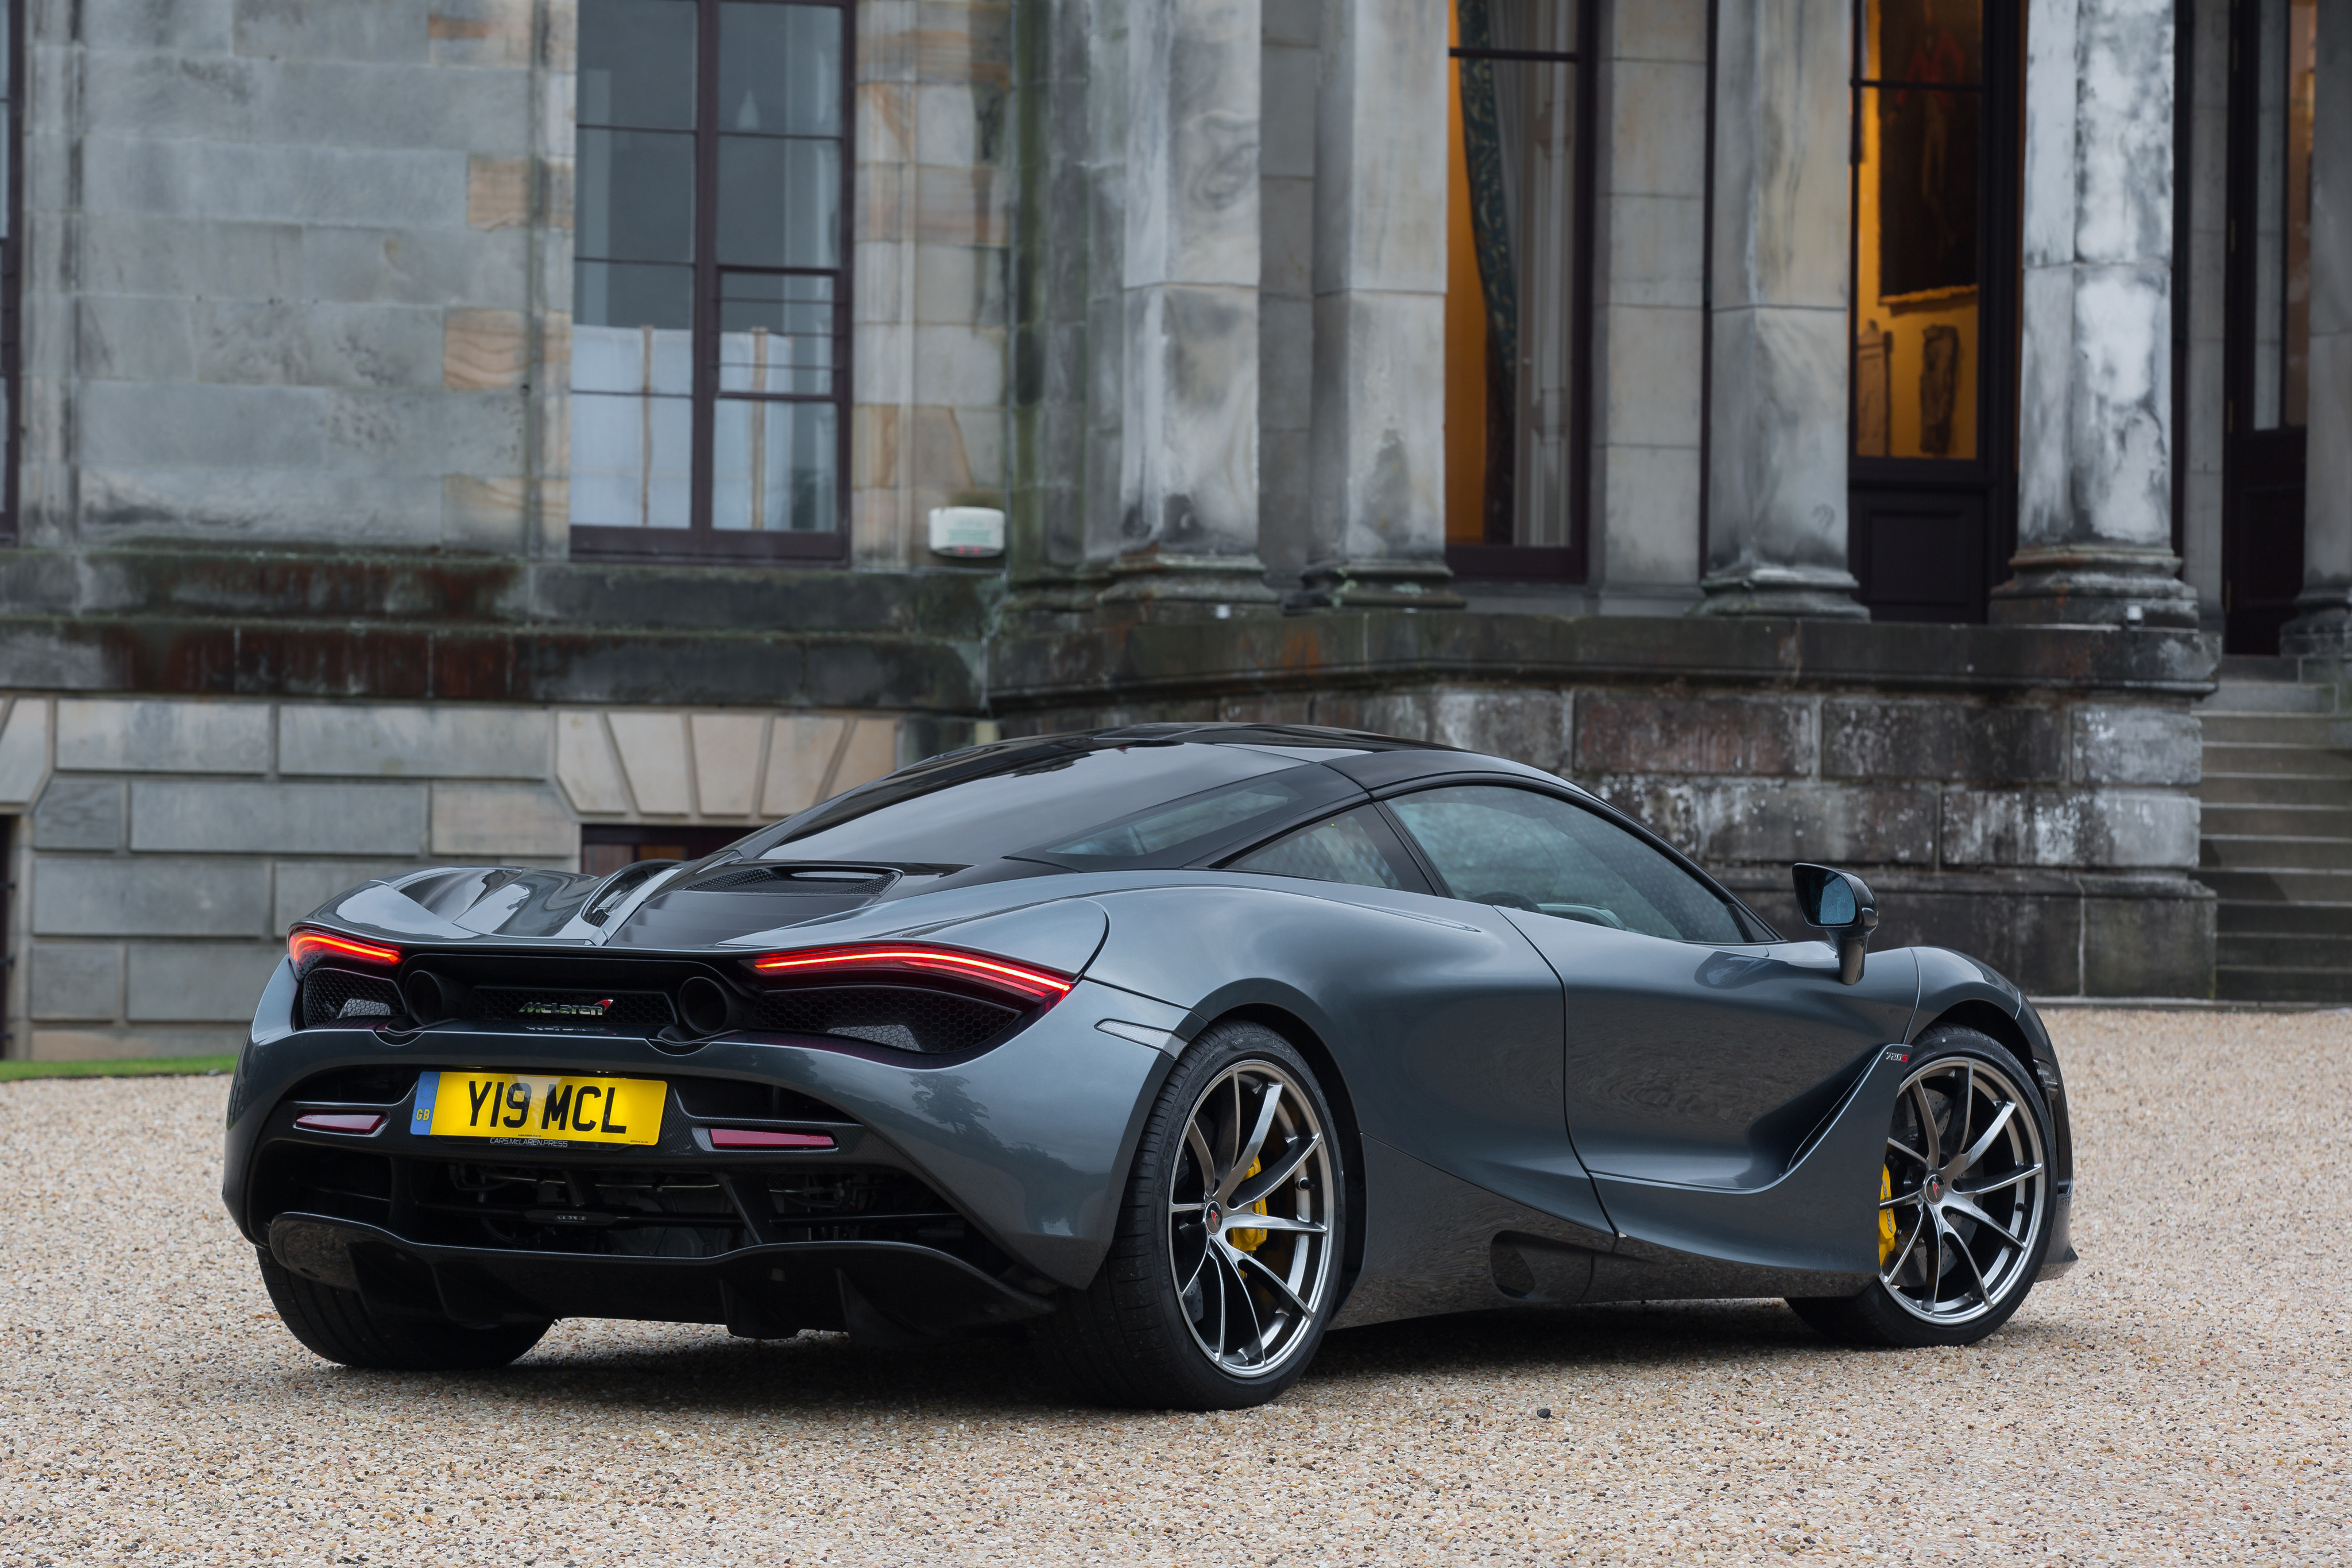 mclaren 720s coupe, hd cars, 4k wallpapers, images, backgrounds